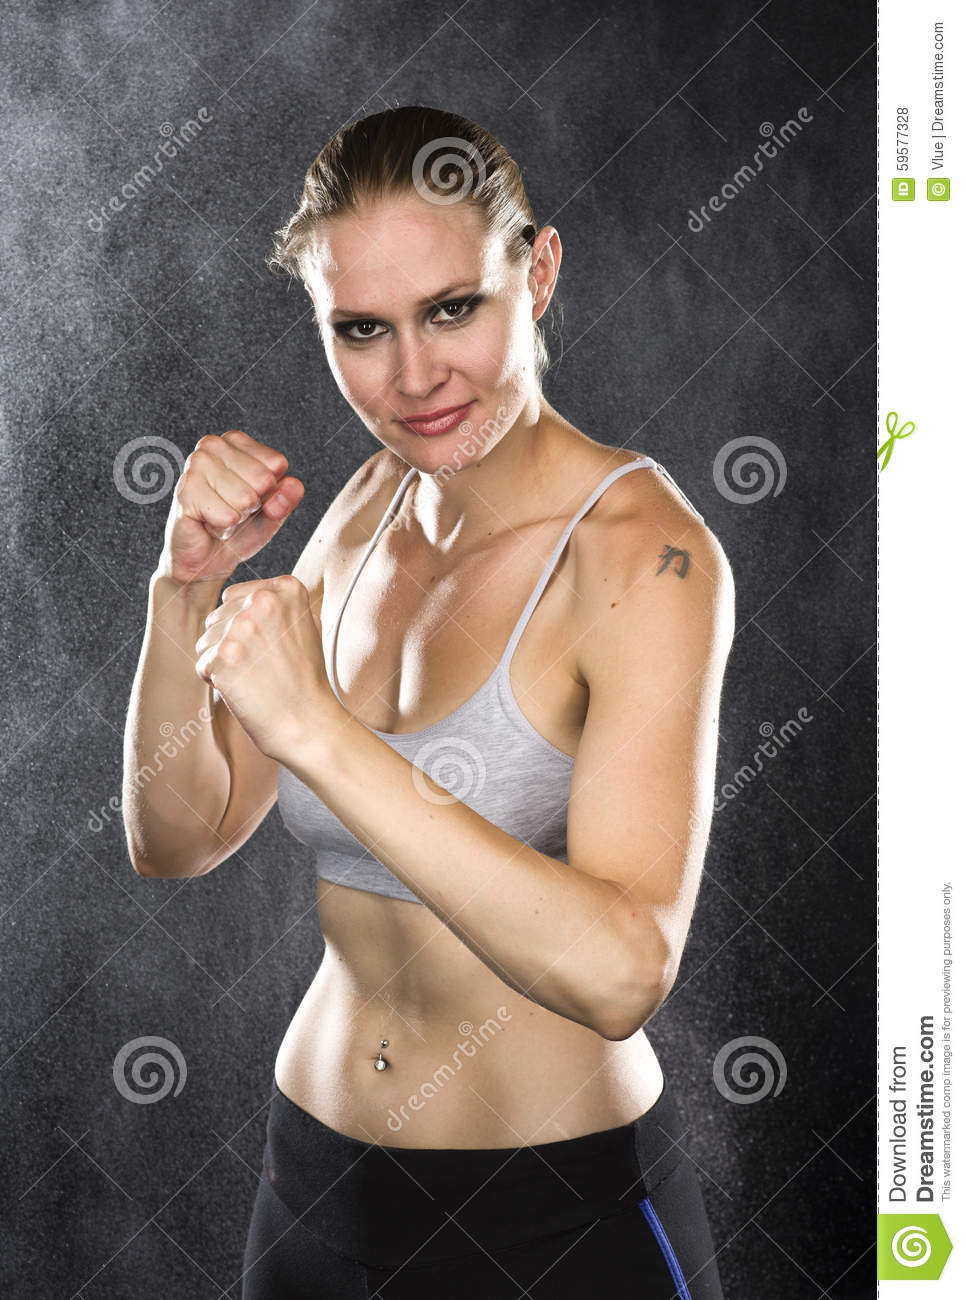 Fighter Woman Smiles at Camera Against Water Drops